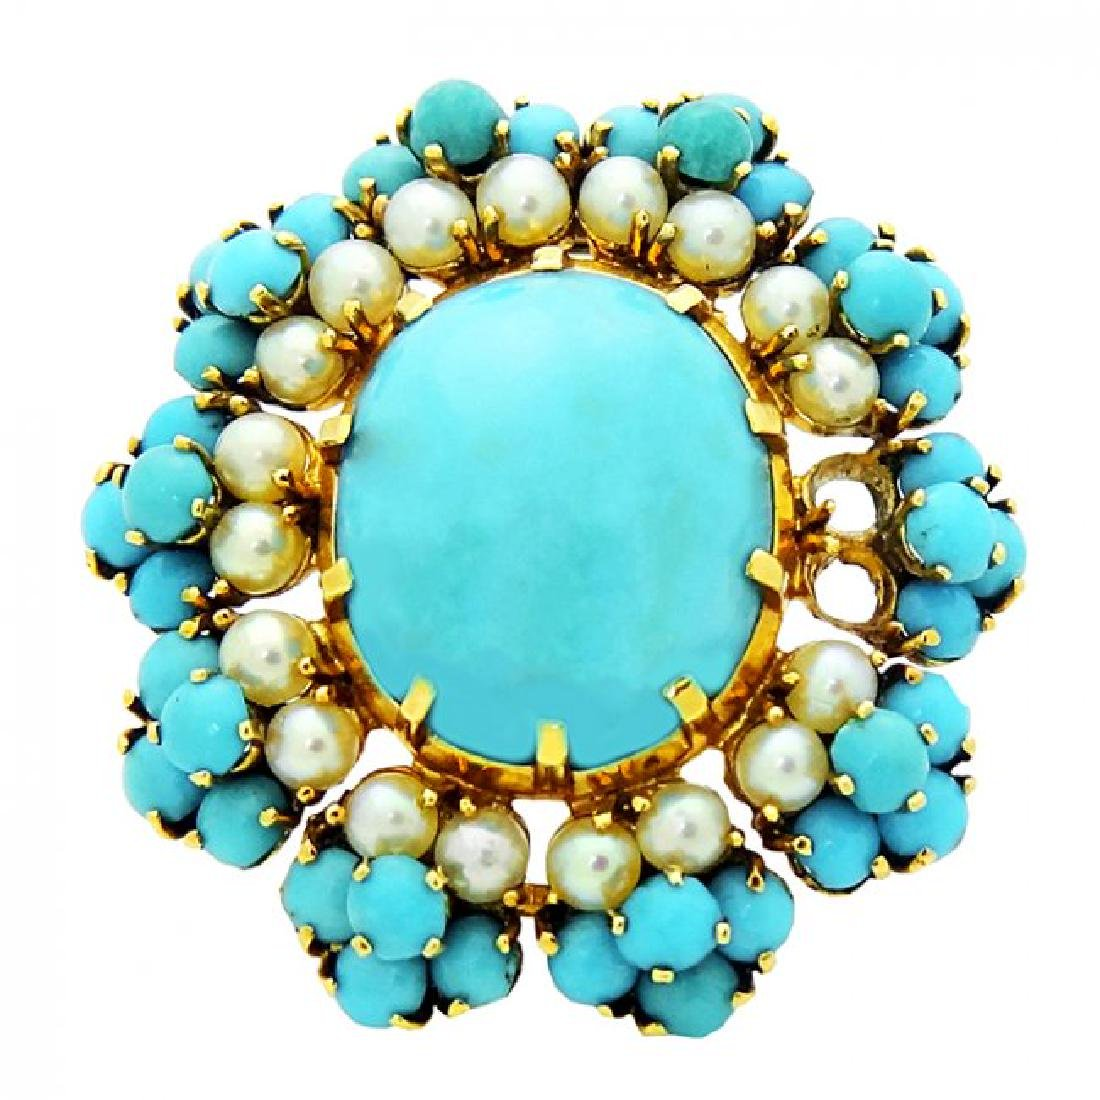 Vintage 18k French turquoise center broach